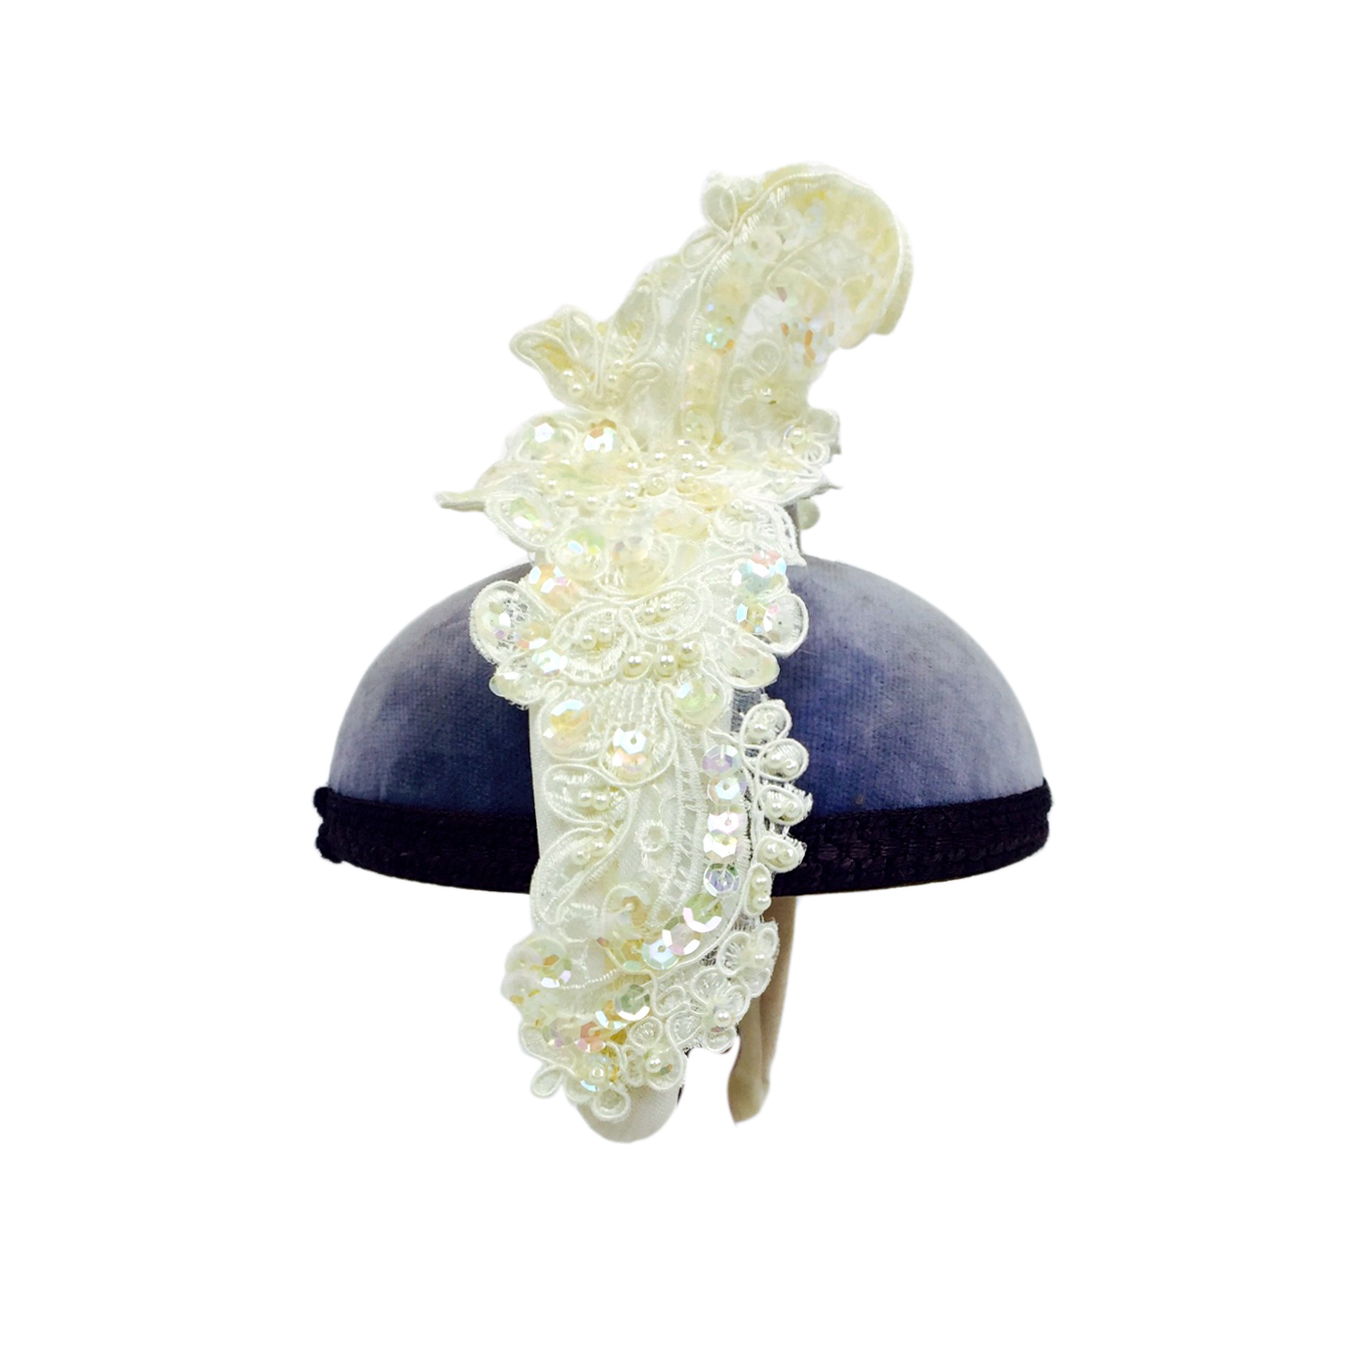 Yvette Jelfs hand embroidered lace bridal headpiece